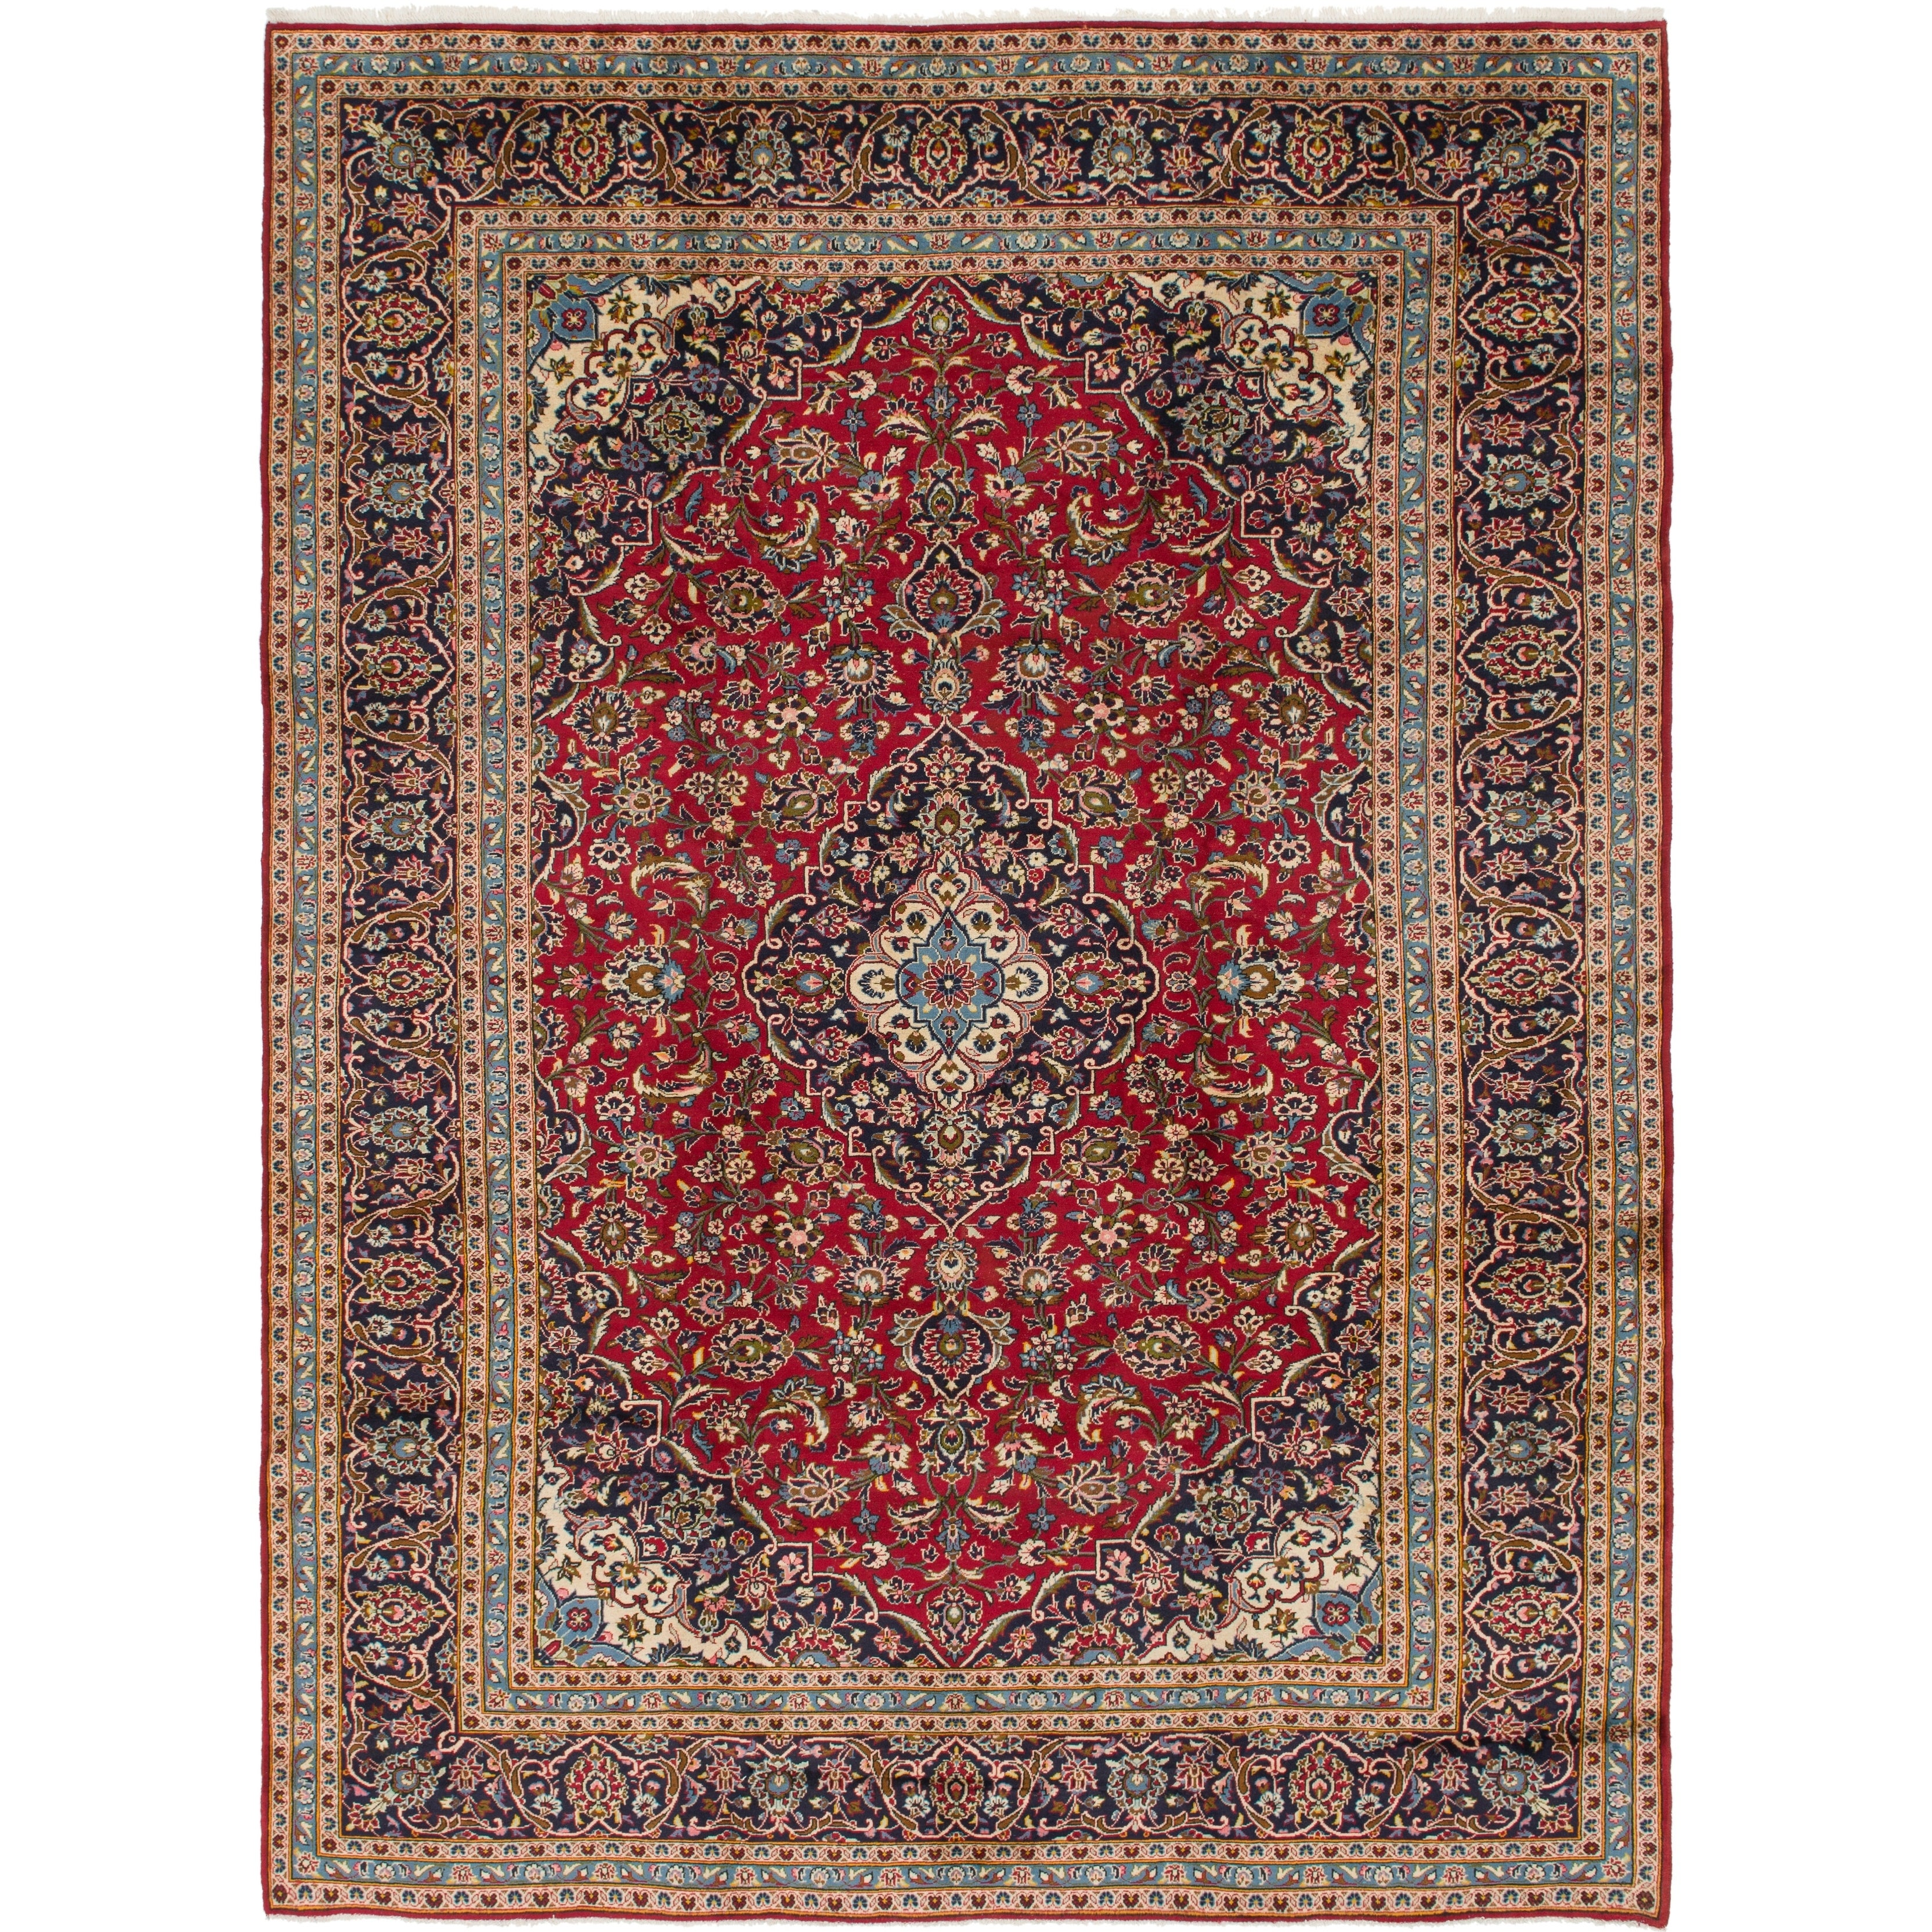 Hand Knotted Kashan Semi Antique Wool Area Rug - 9 9 x 13 2 (Red - 9 9 x 13 2)